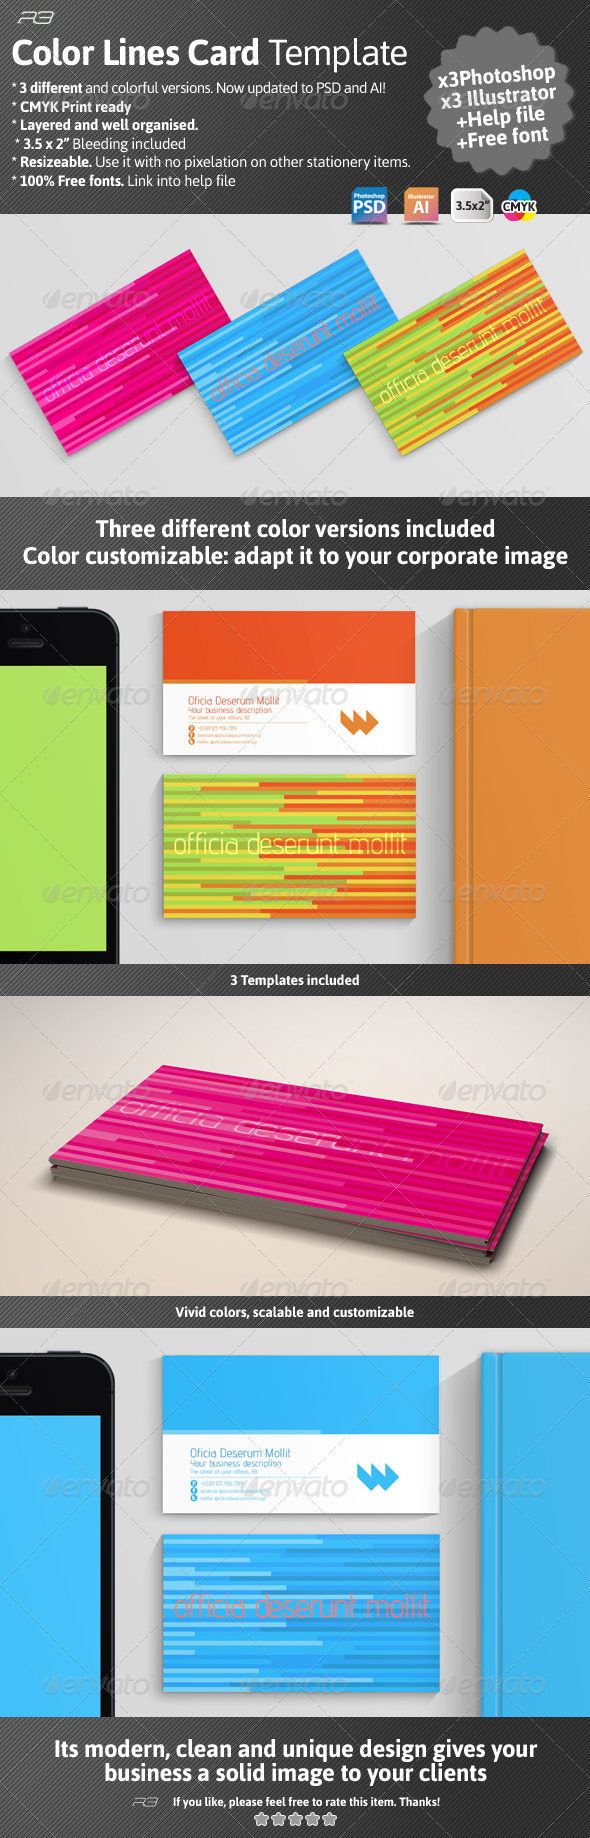 Color Lines Card Template - Creative Business Cards